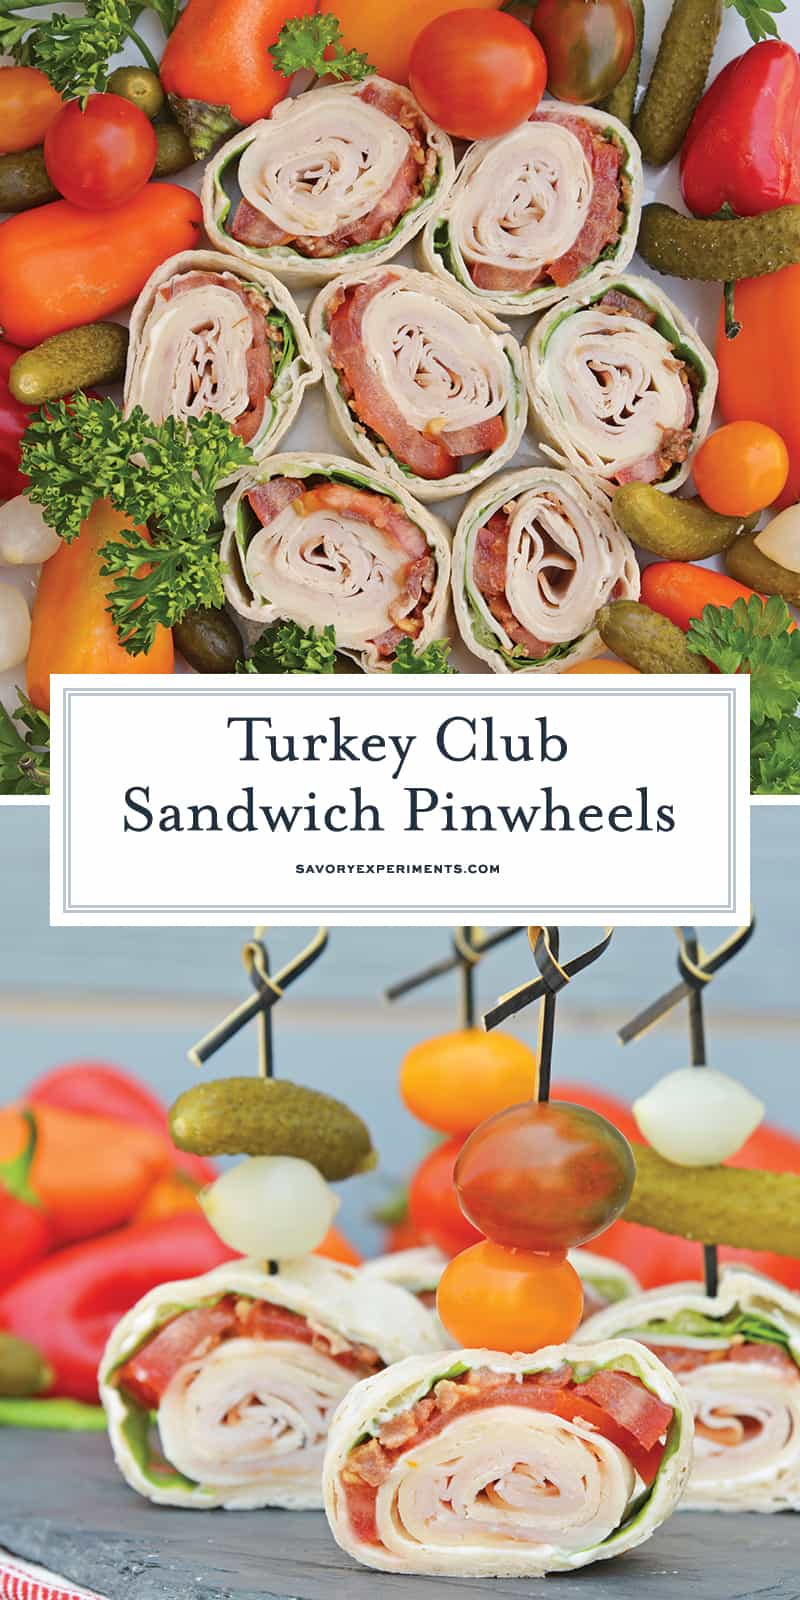 Turkey Club Sandwich Pinwheels use the traditional club sandwich ingredients, but wrap them in a tortilla. Easy to make, eat and clean up! #clubsandwichrecipe #turkeyclub #howtomakepinwheels www.savoryexperiments.com